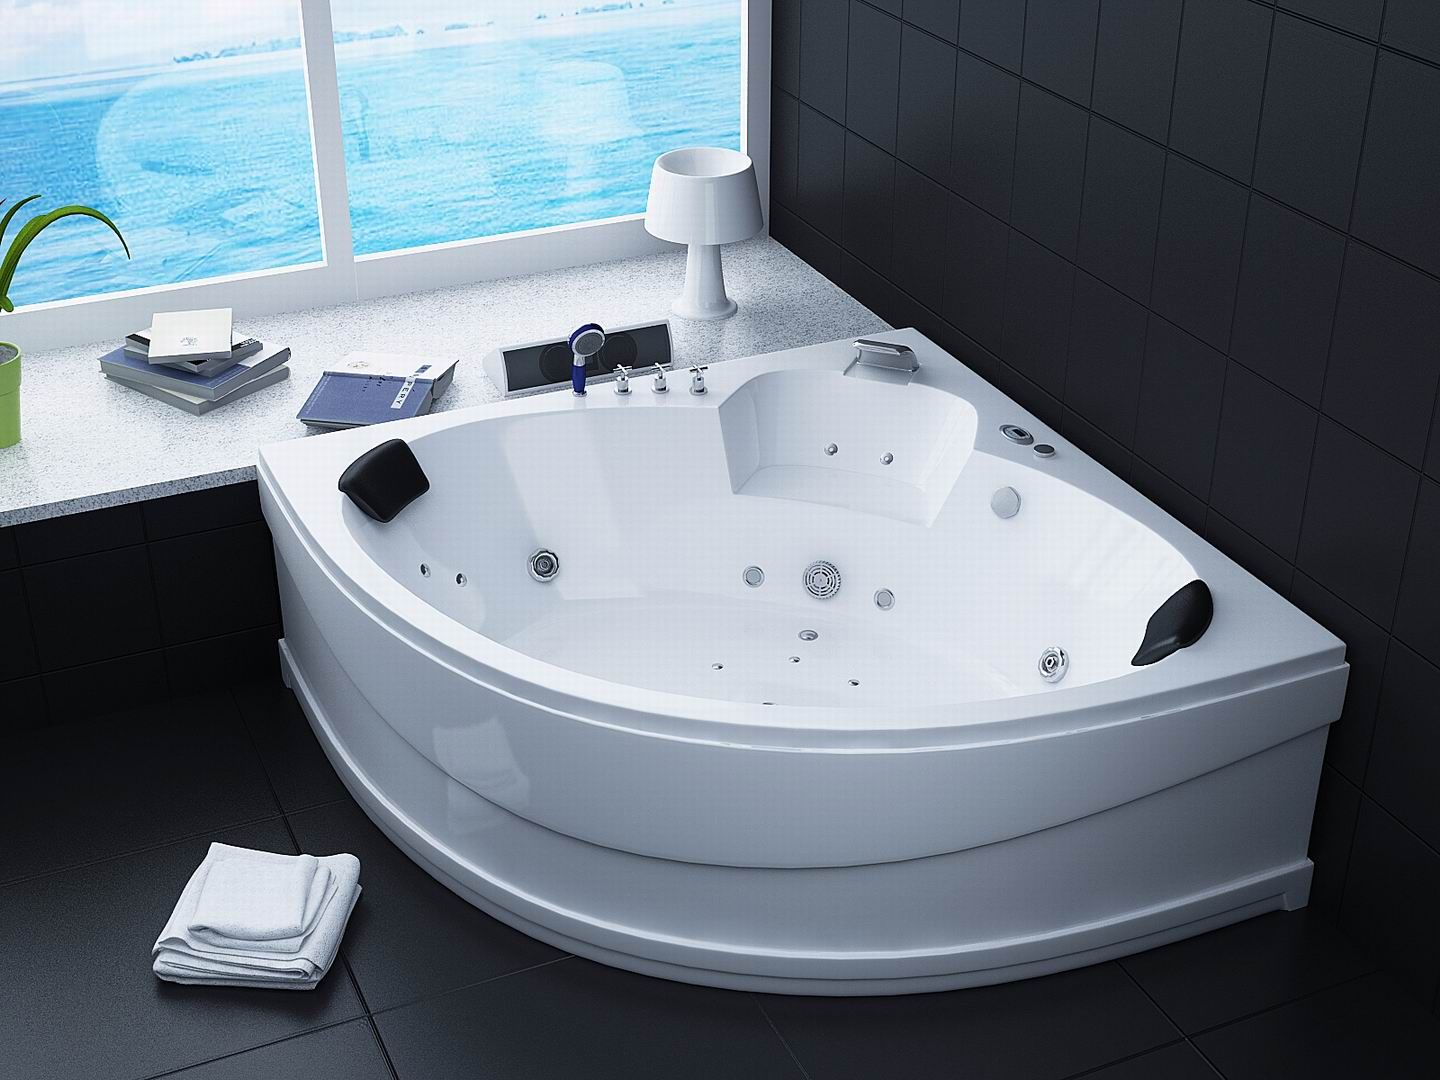 Hot Item Jacuzzi Bathtub Mt Nr1801 Jacuzzi Bathtub Refinish Bathtub Tub Shower Combo